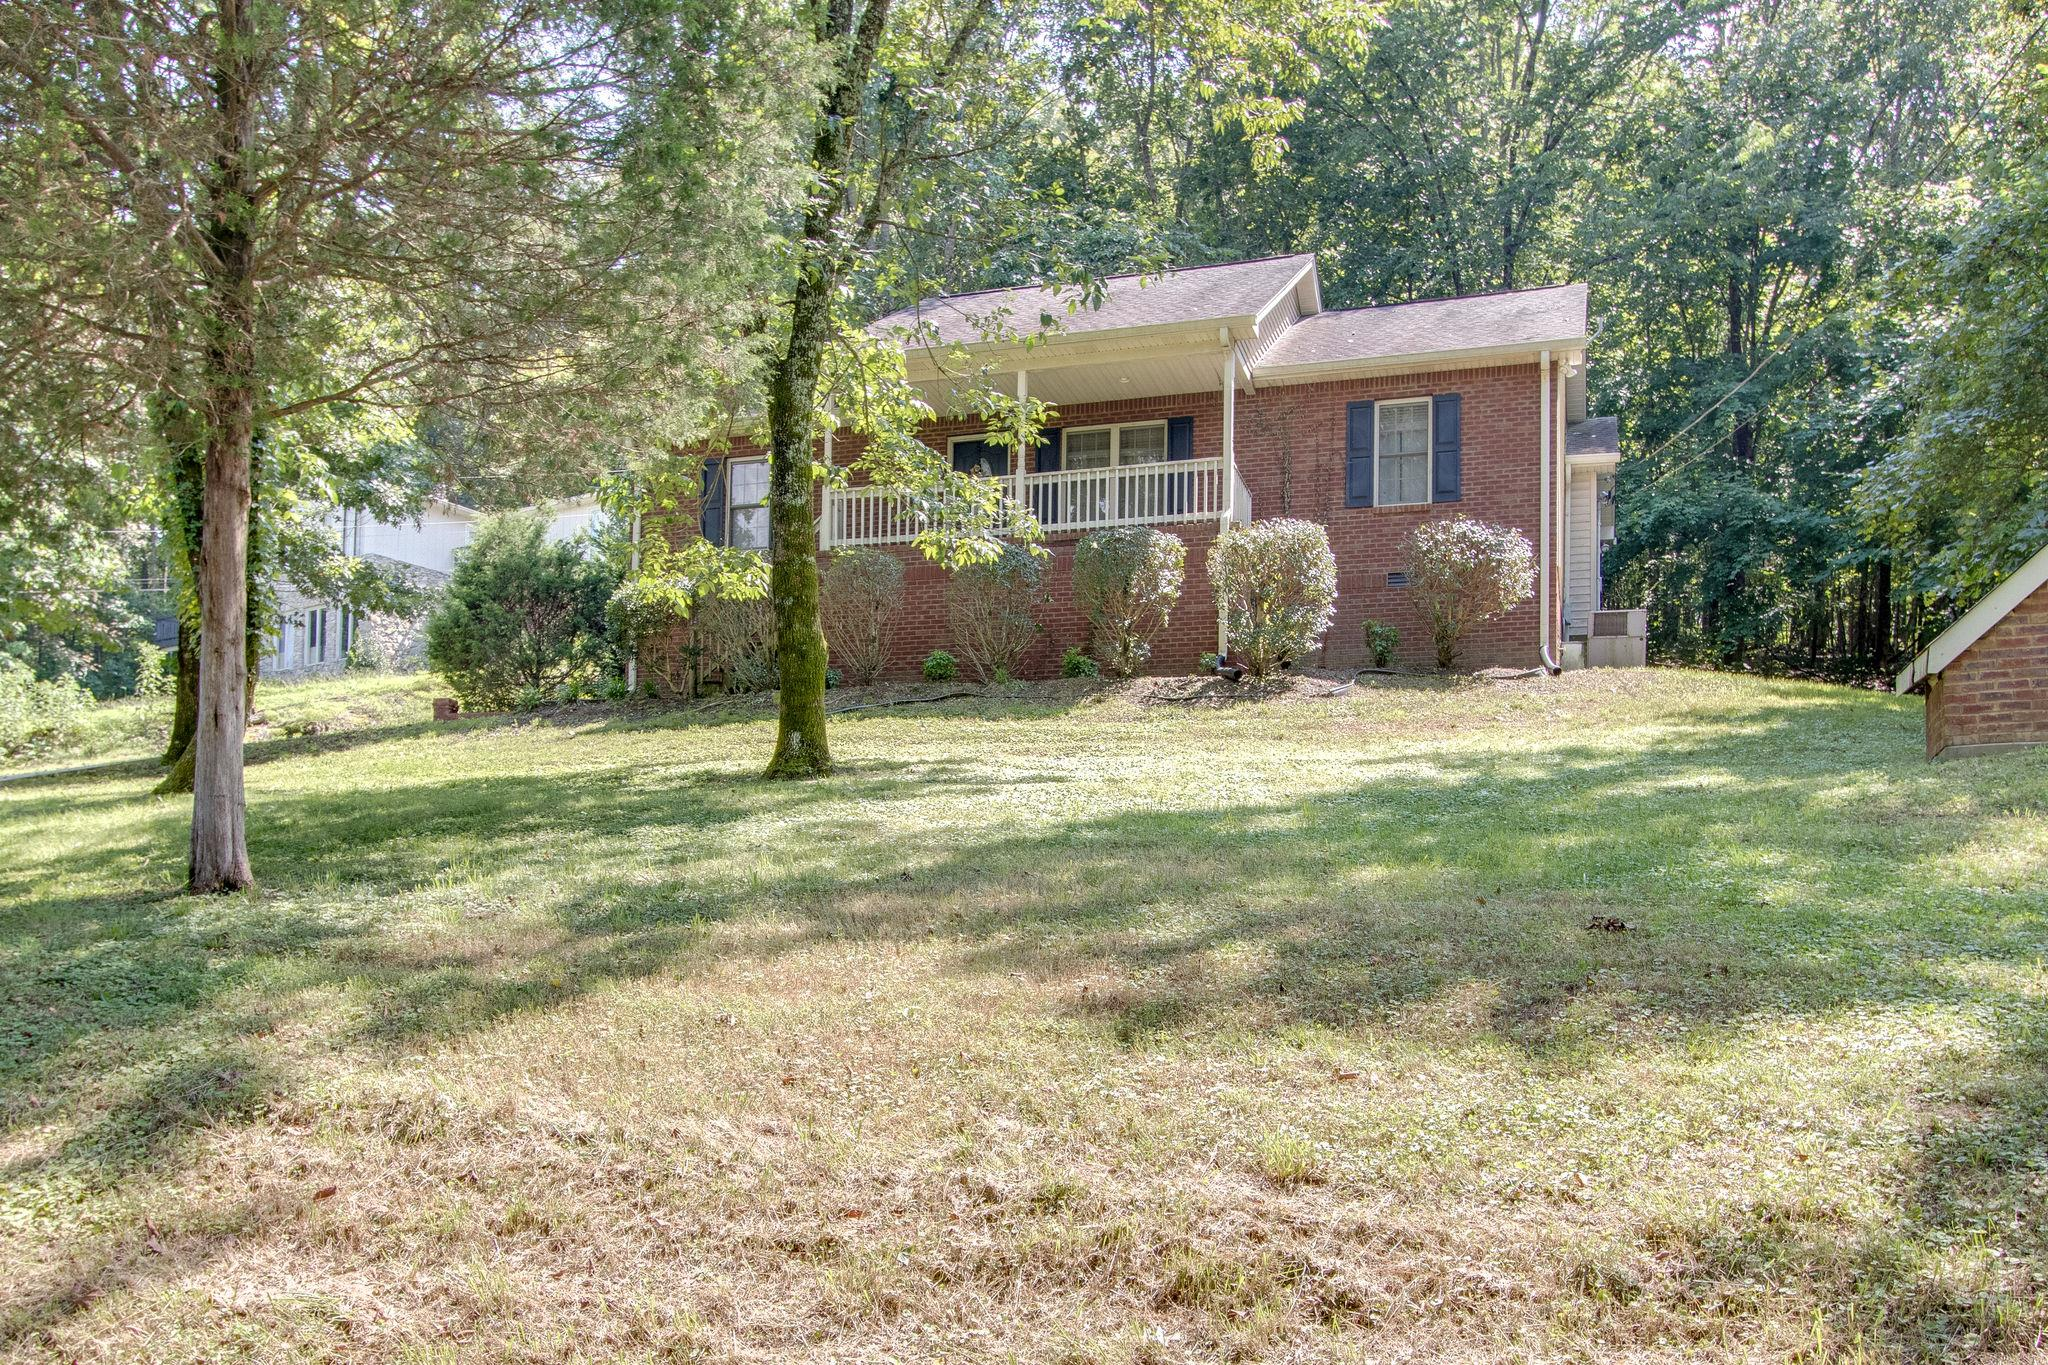 120 Sky View Dr, Carthage, TN 37030 - Carthage, TN real estate listing